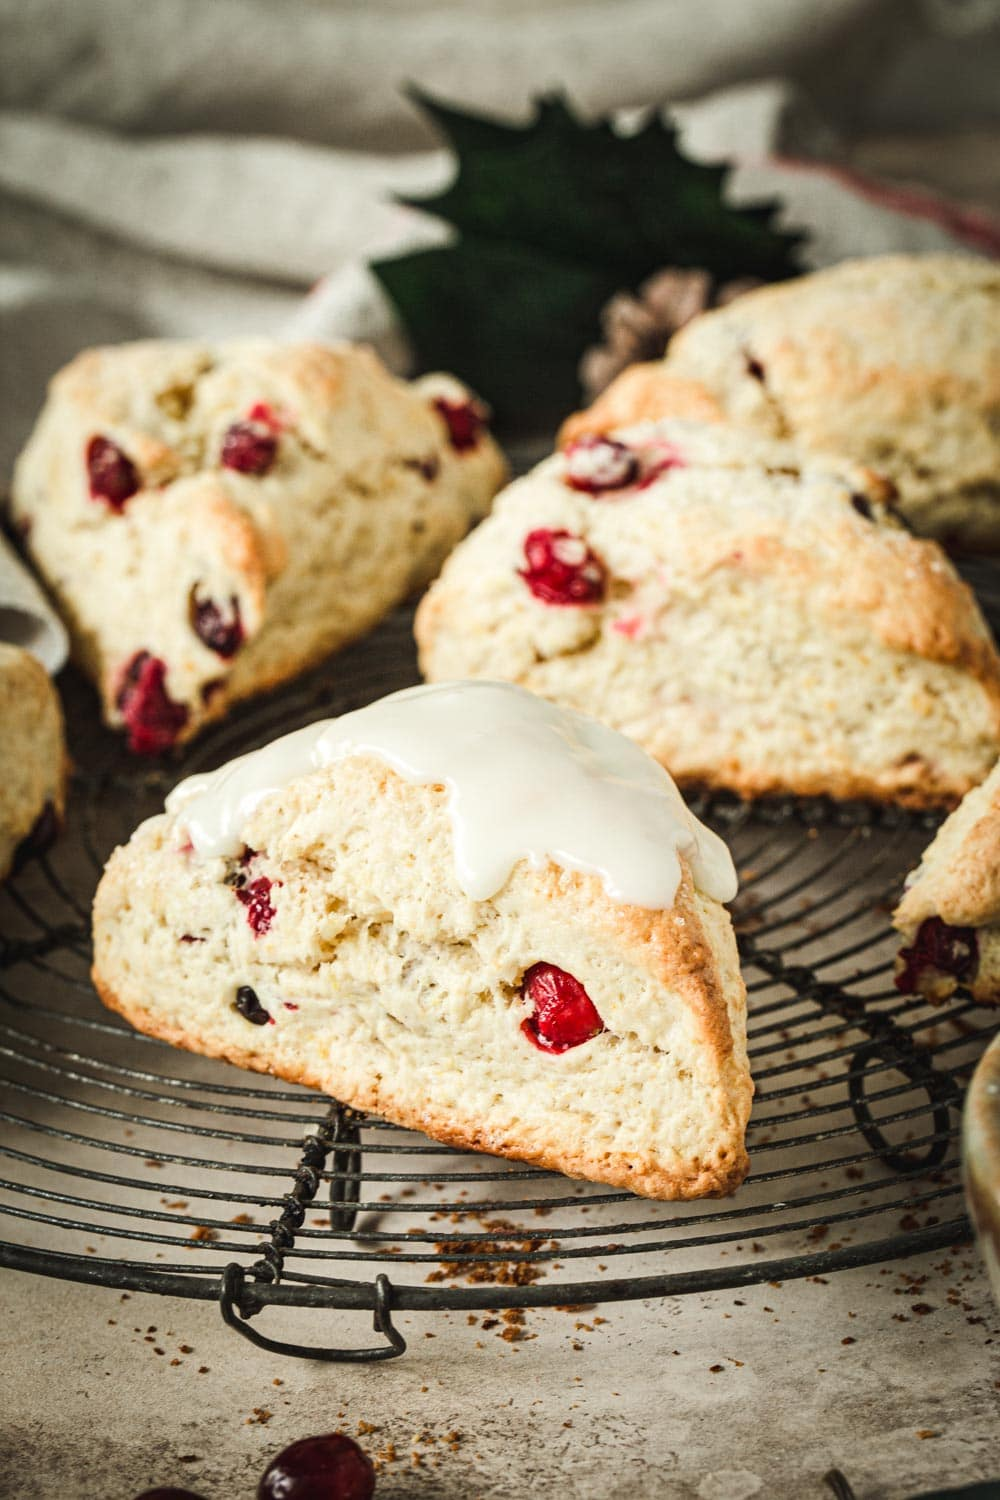 Cranberry orange scones covered in icing sitting on a wire rack.